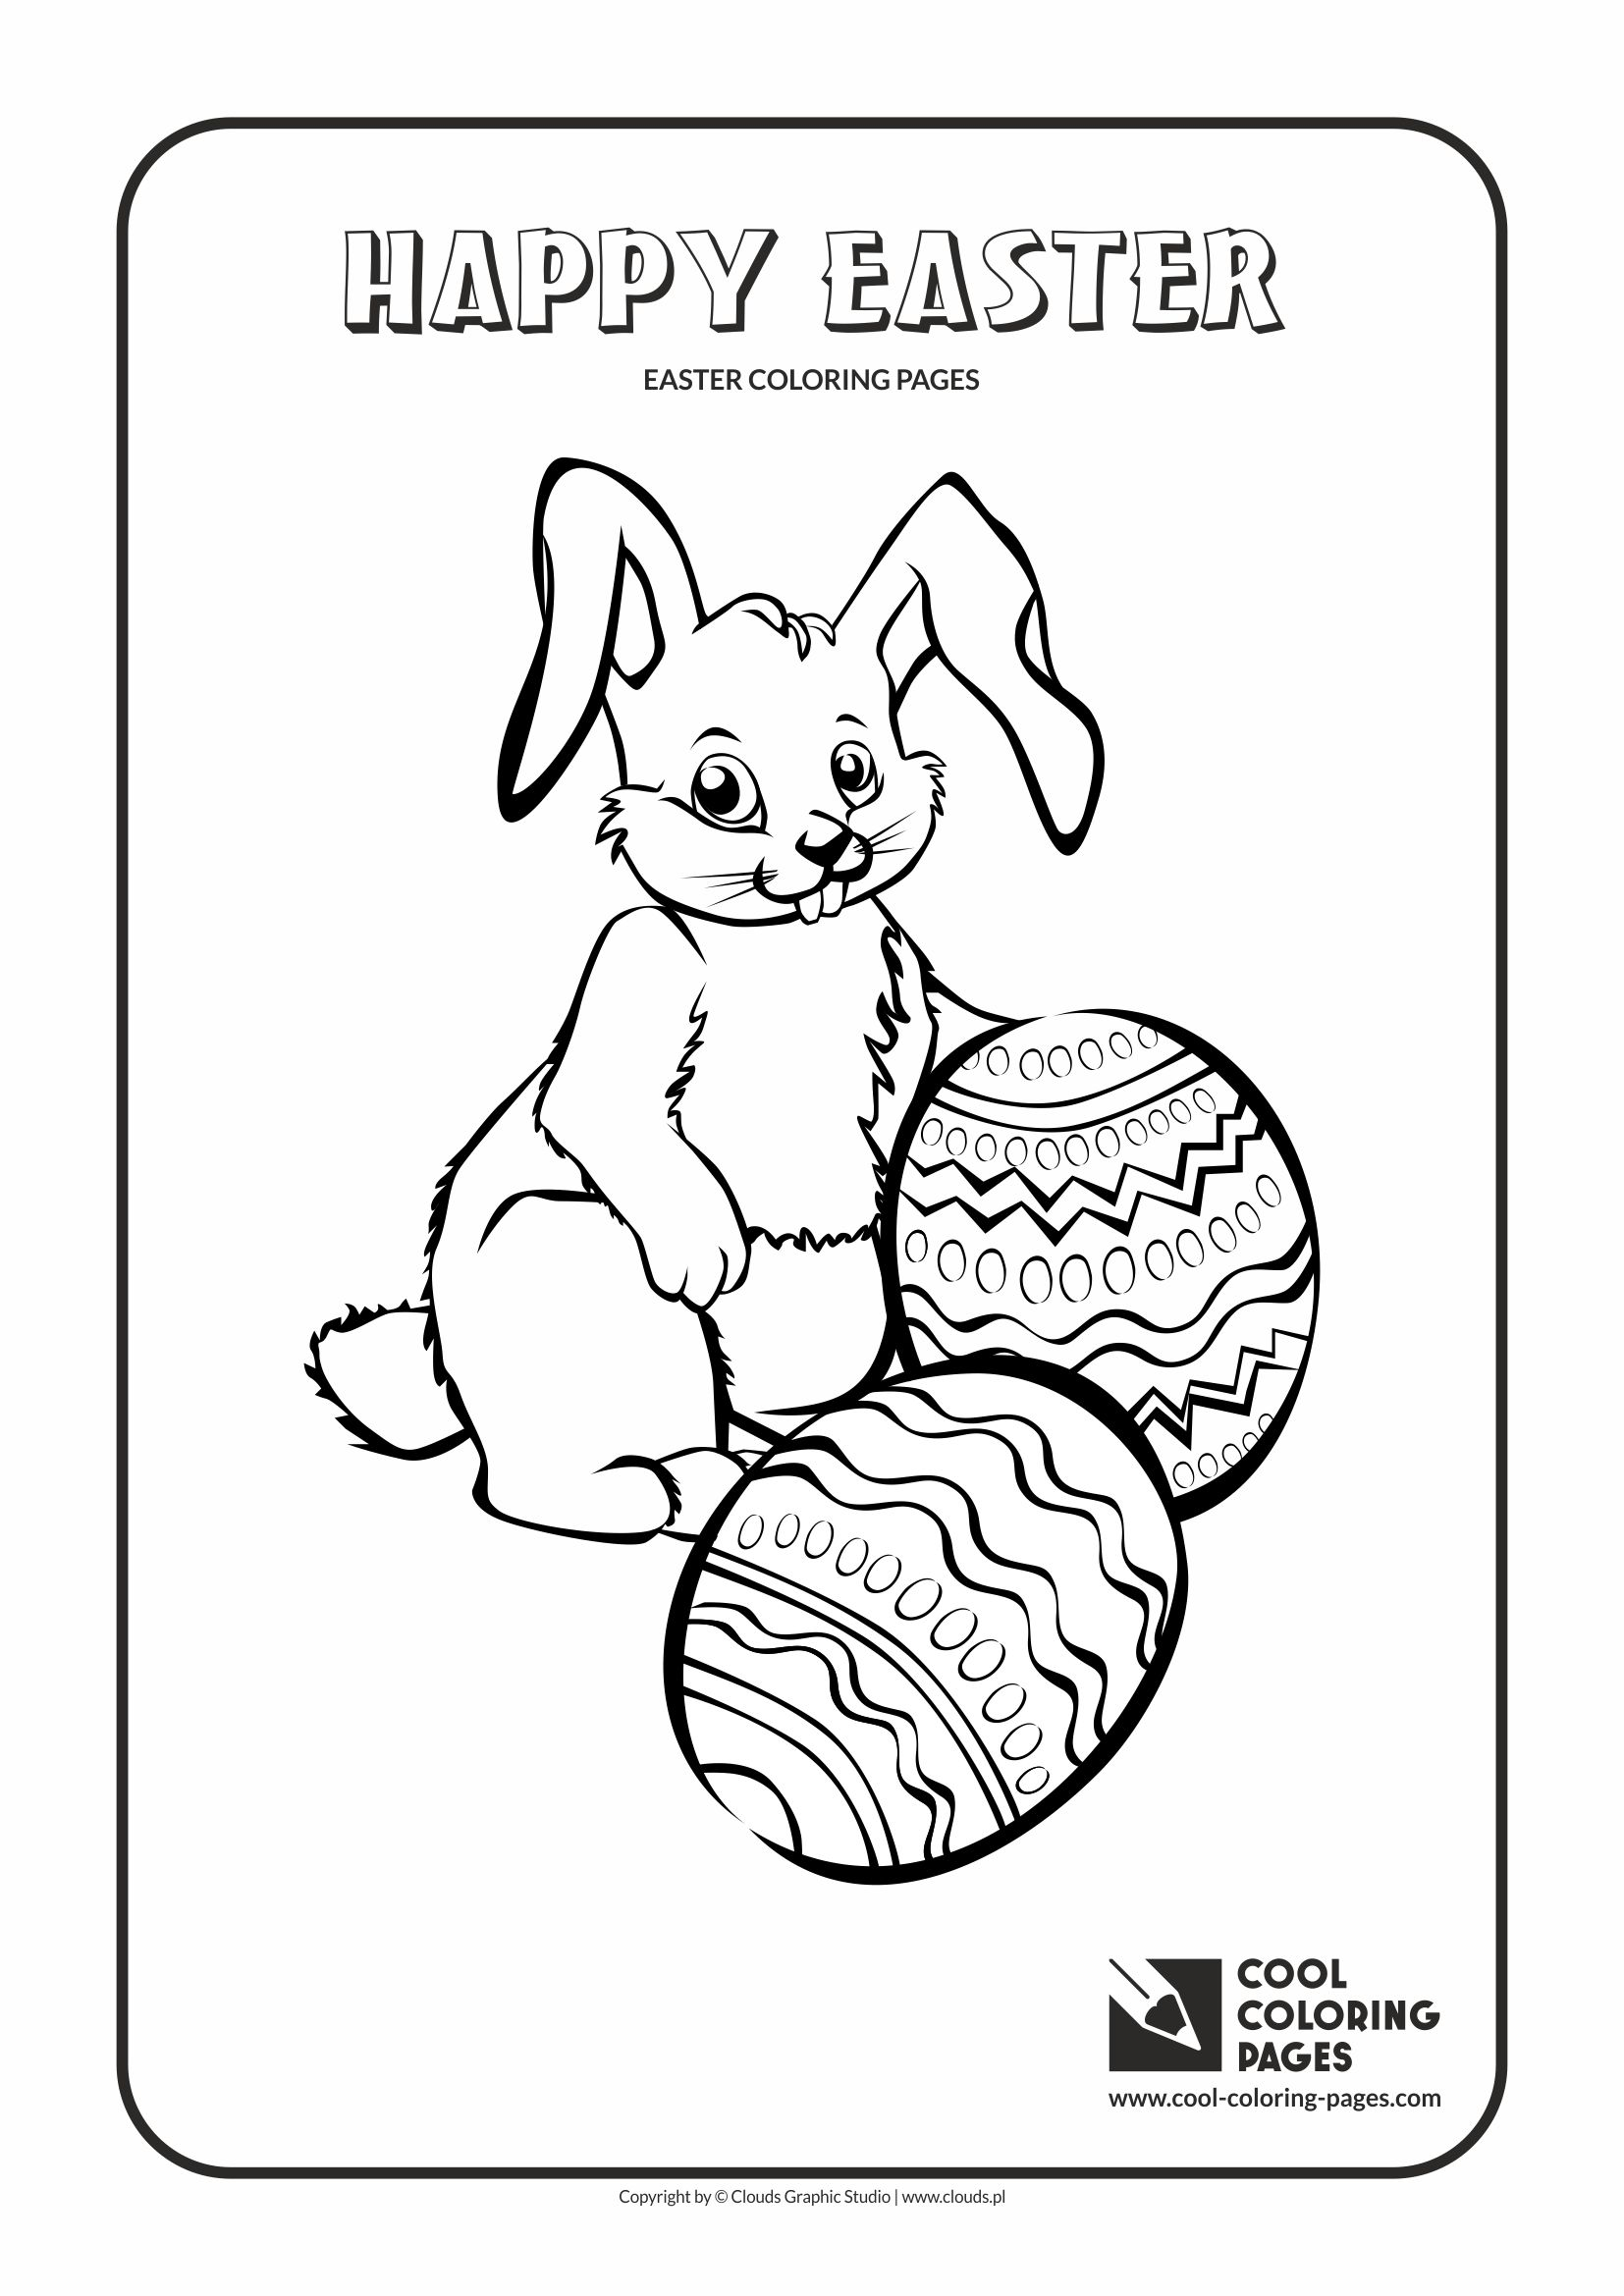 Cool Coloring Pages Easter Bunny No 1 Page